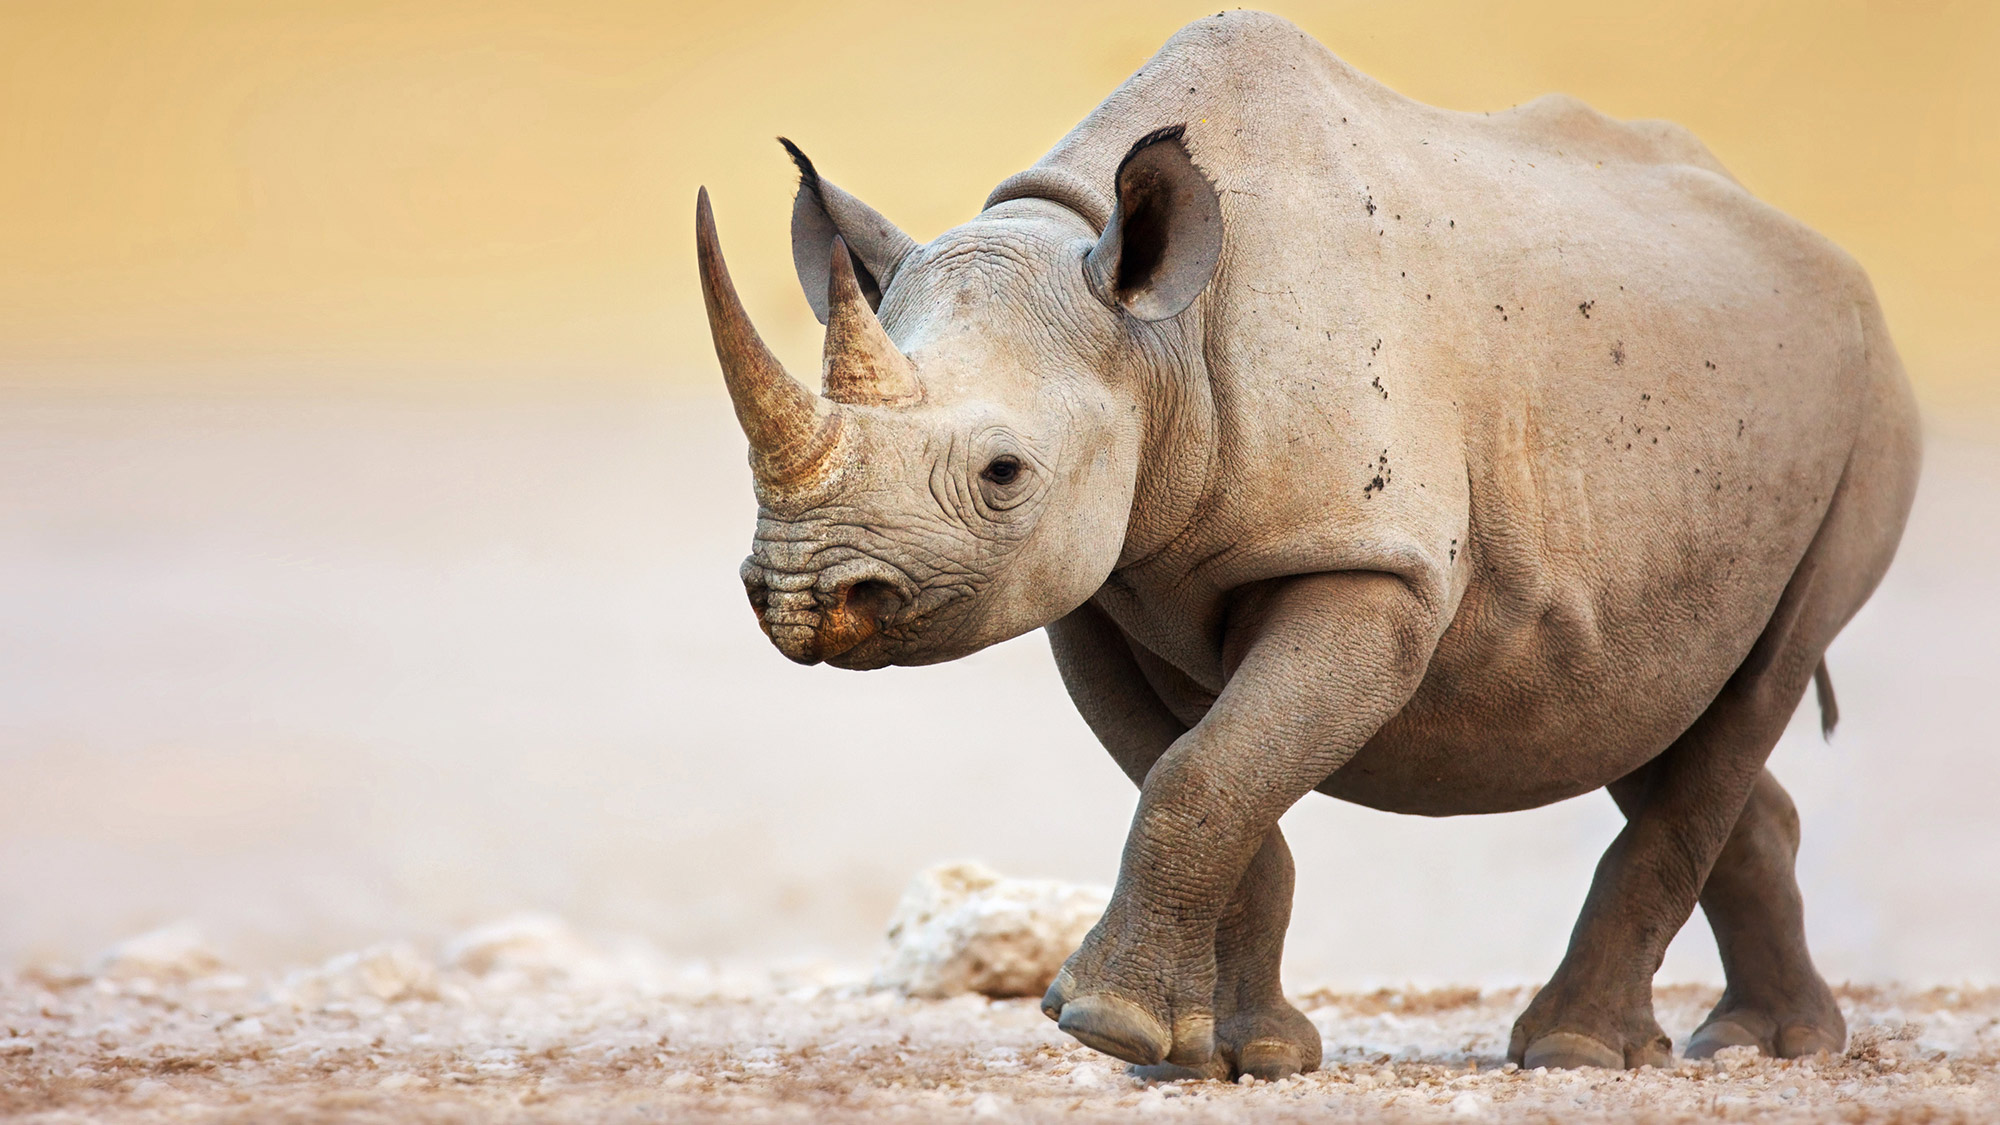 Animal Planet Wallpaper Hd Rhino Impact Investment Project Zoological Society Of